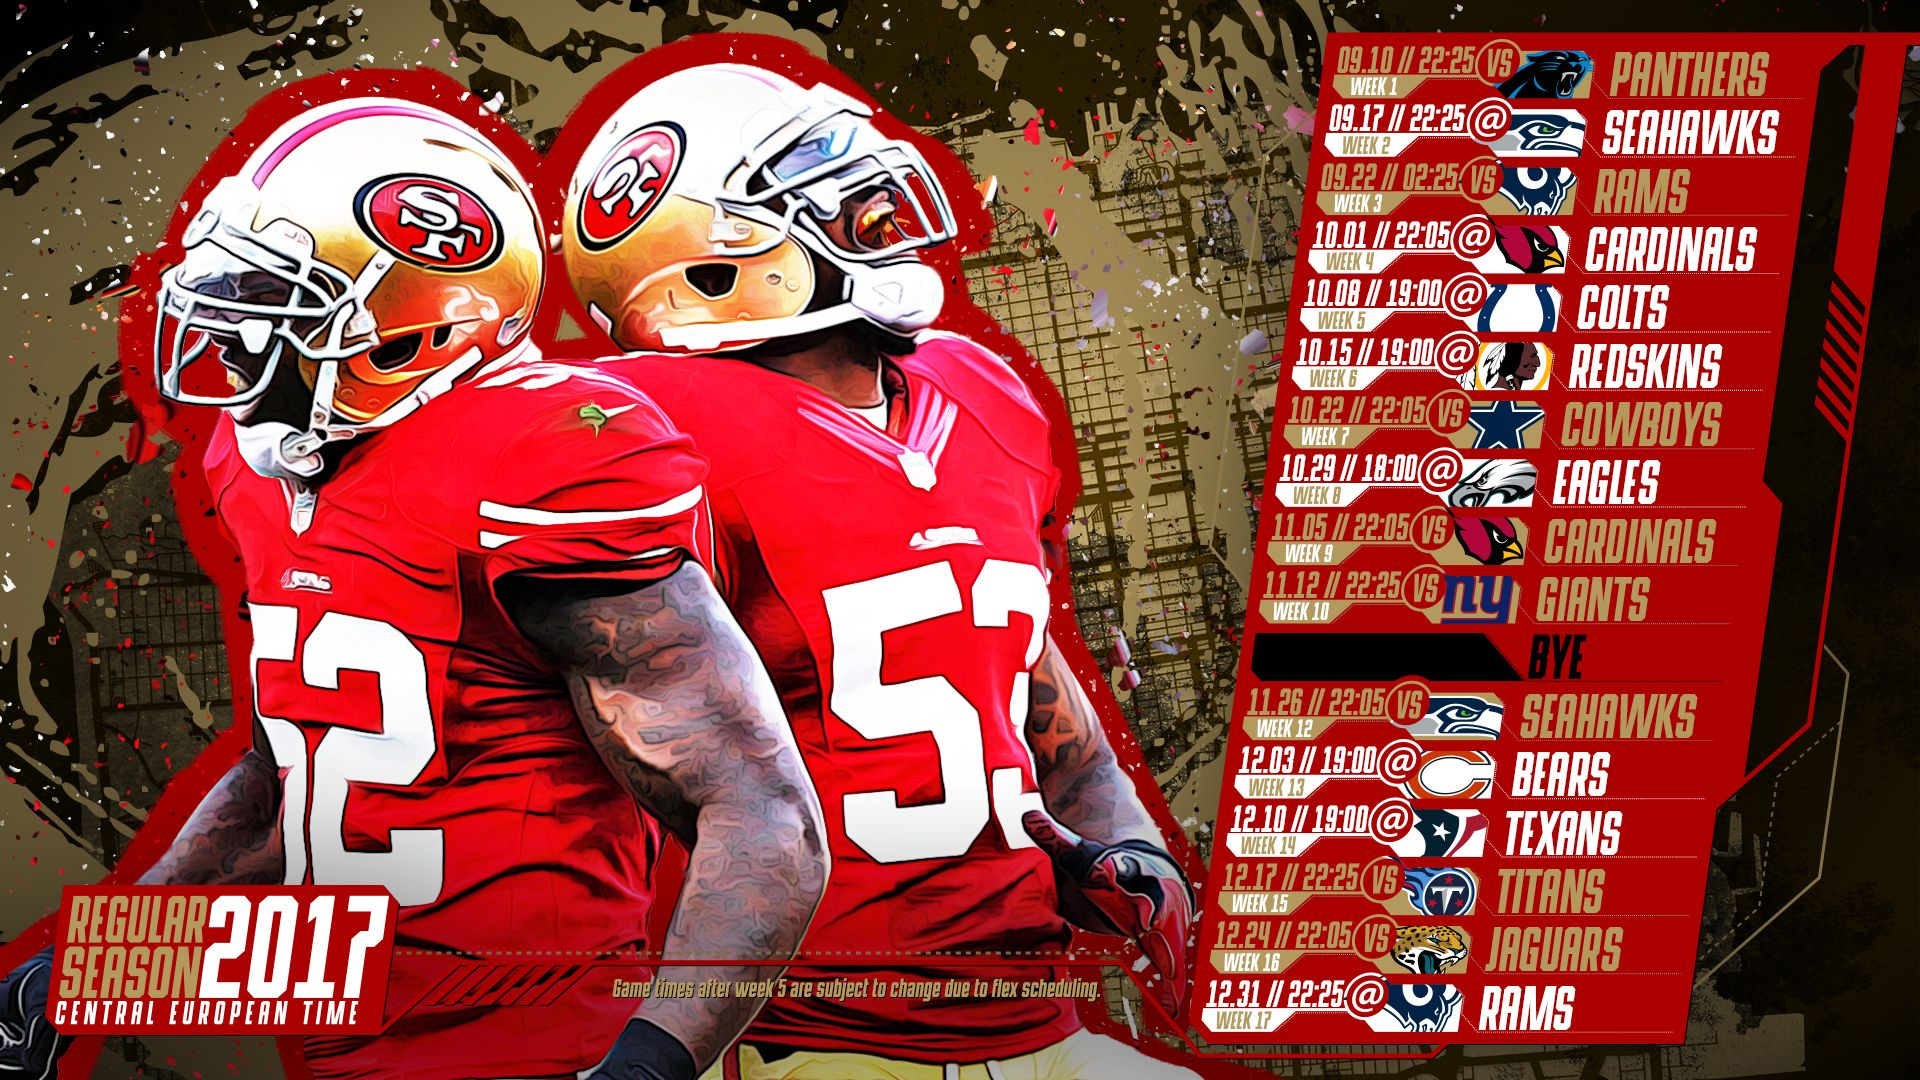 Schedule wallpaper for the San Francisco 49ers Regular